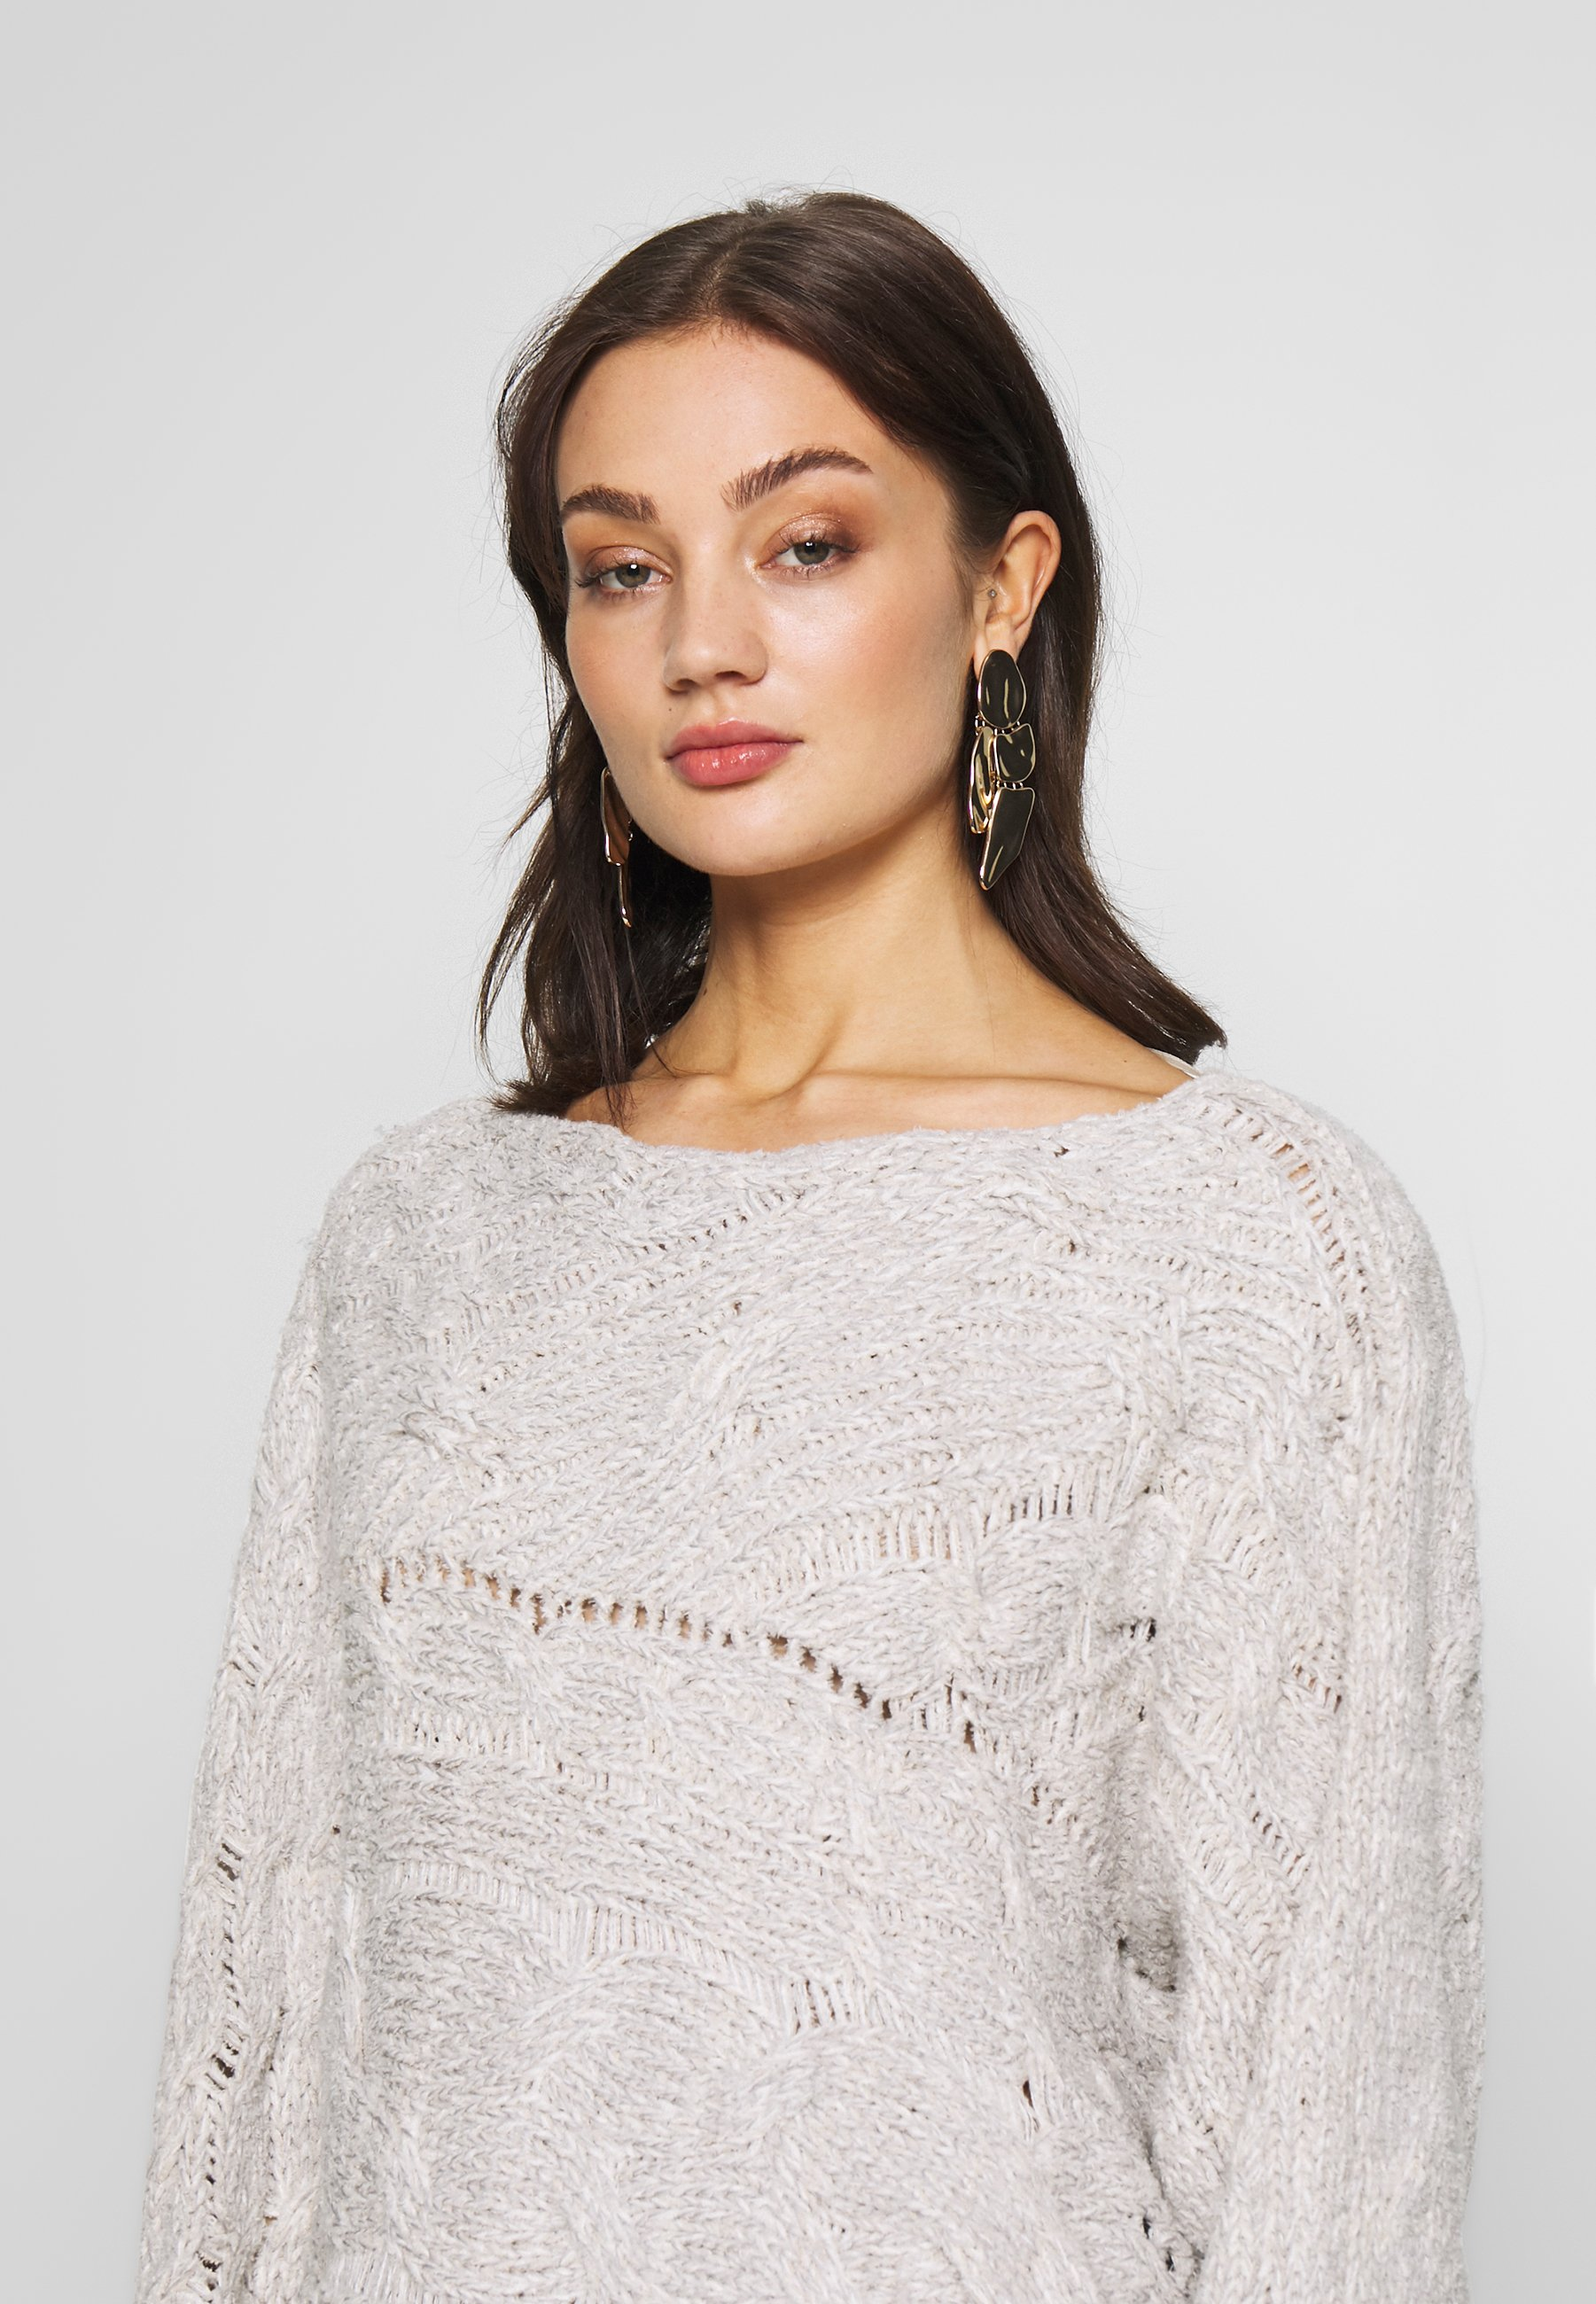 Free People Against The Tide Sweater - Maglione White